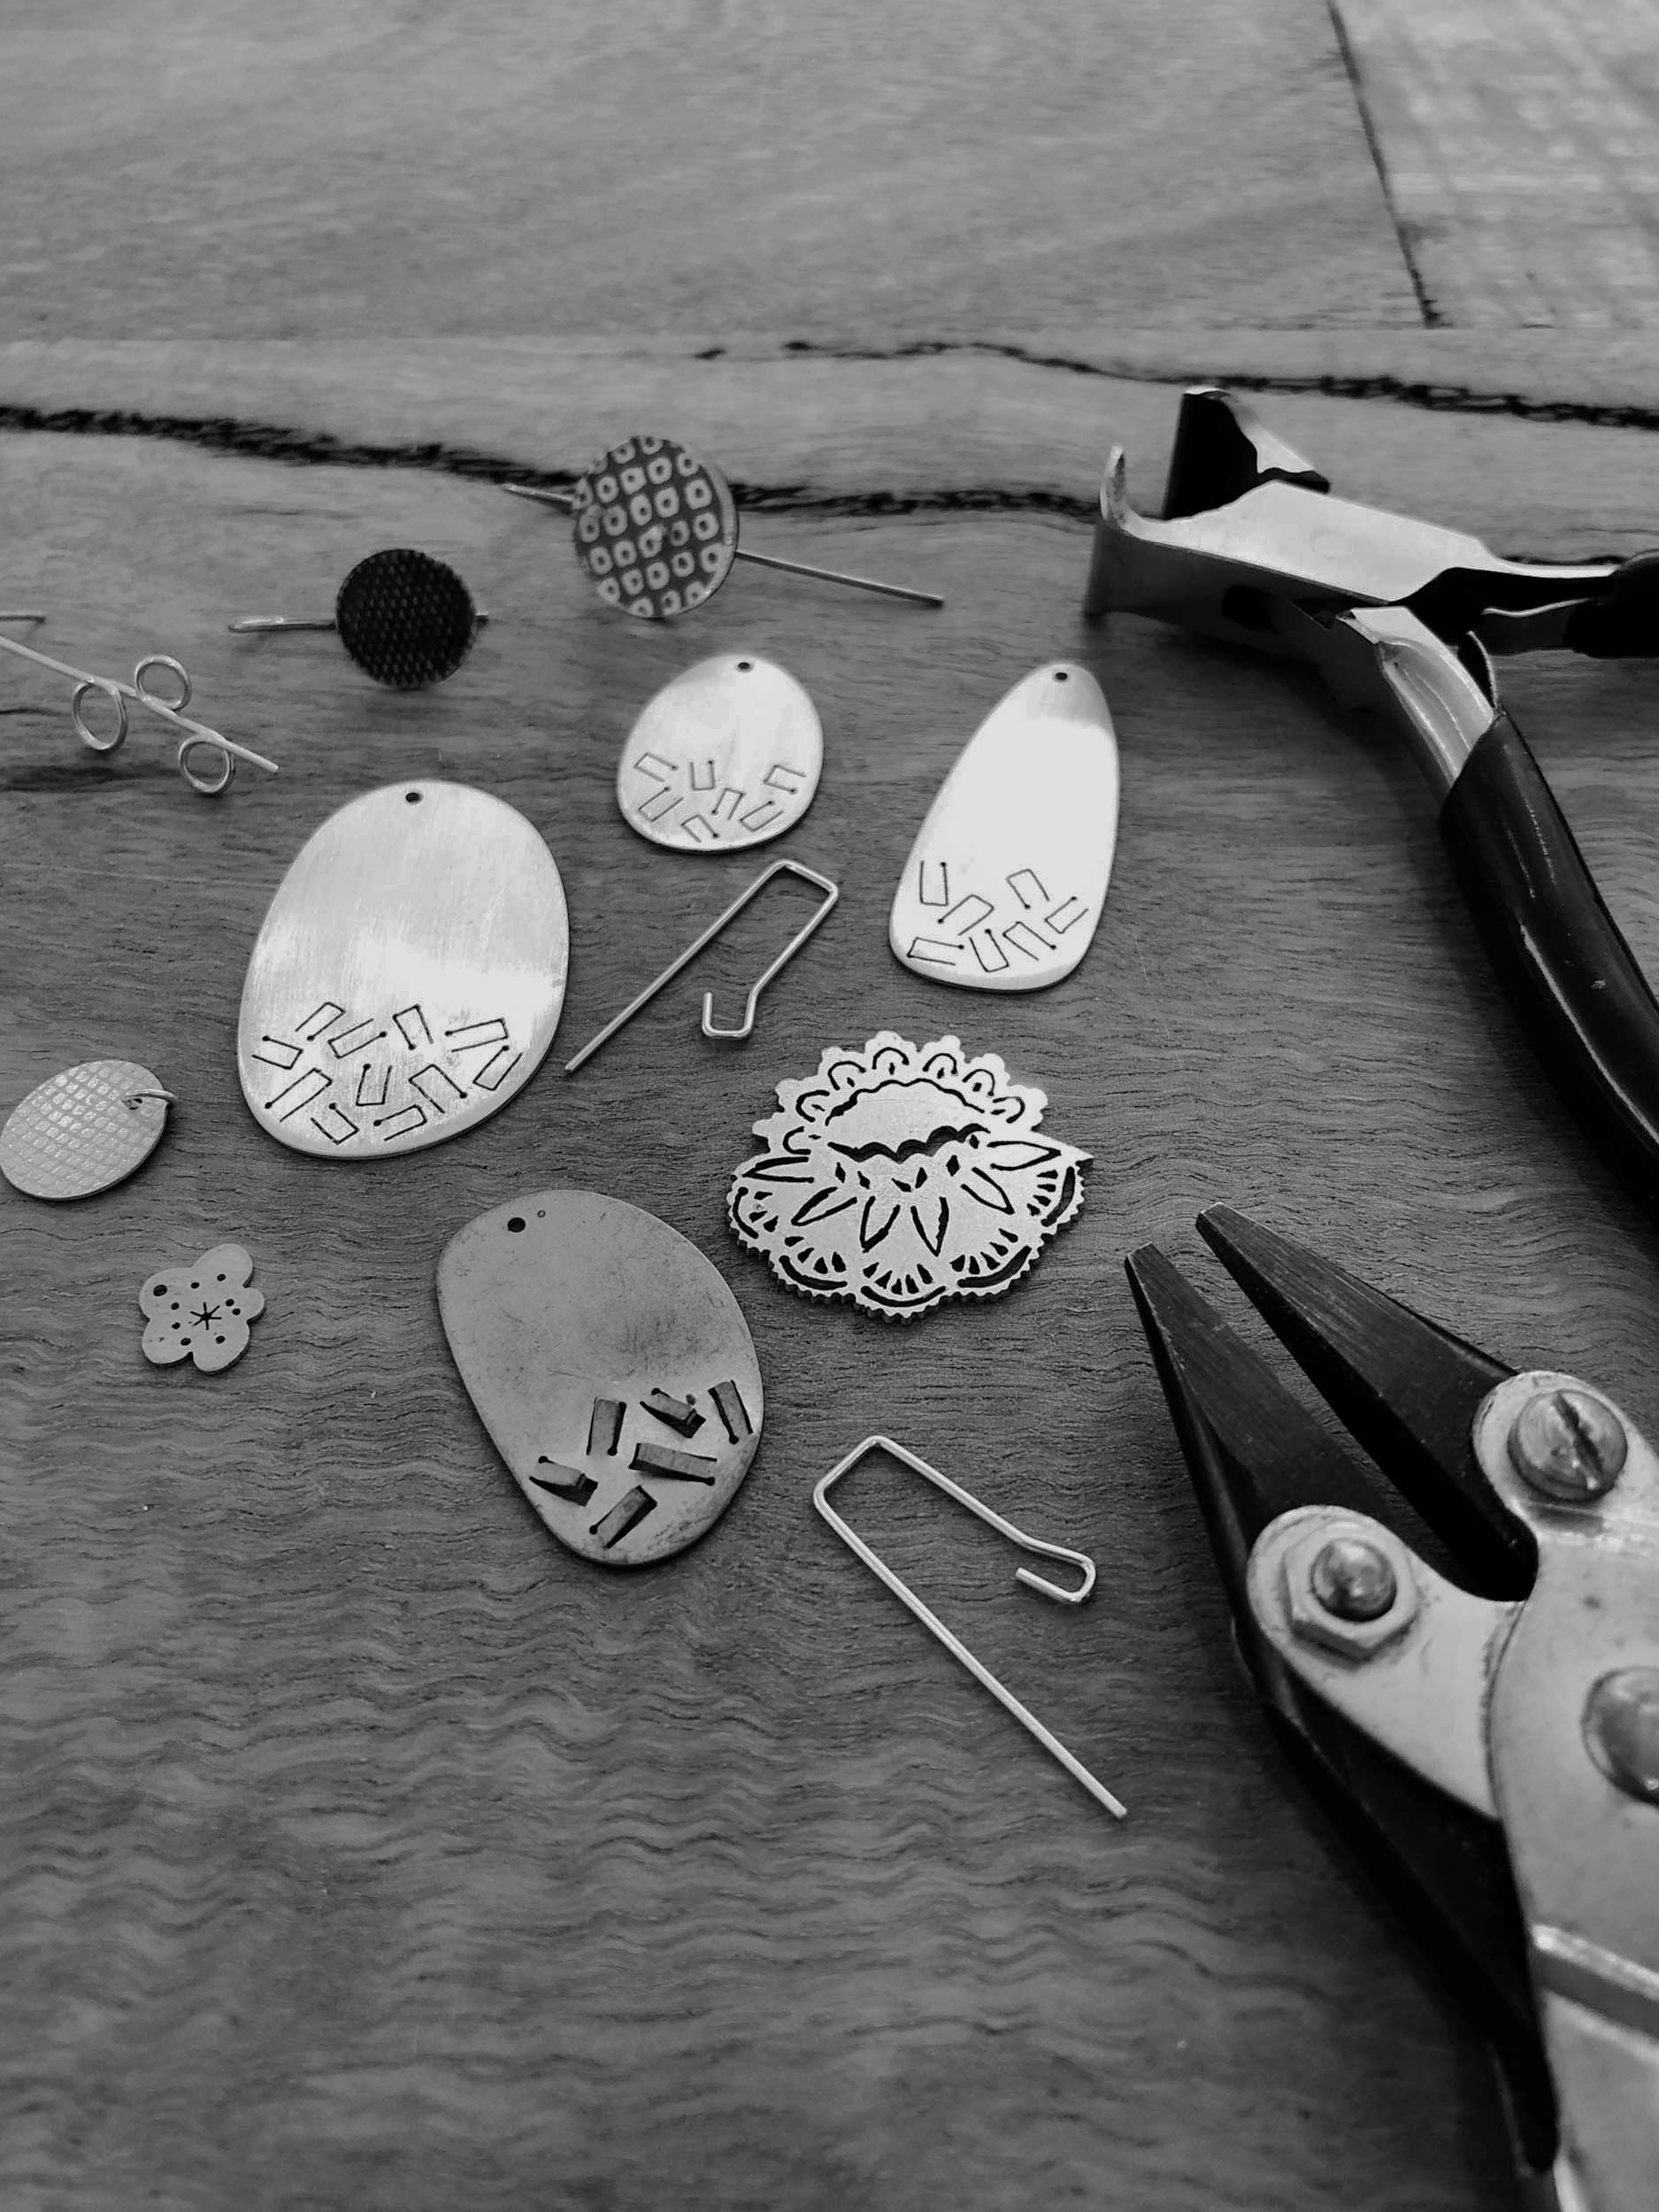 Make Your Own Earrings - Are you an earring lover who wants to take your collection to the next level? During this class you will work within the intimate, six person workshop space at my new Studio Gallery in Glenelg South, to design and make your own earrings. Each student should leave with at least one of earrings, learning some great skills.